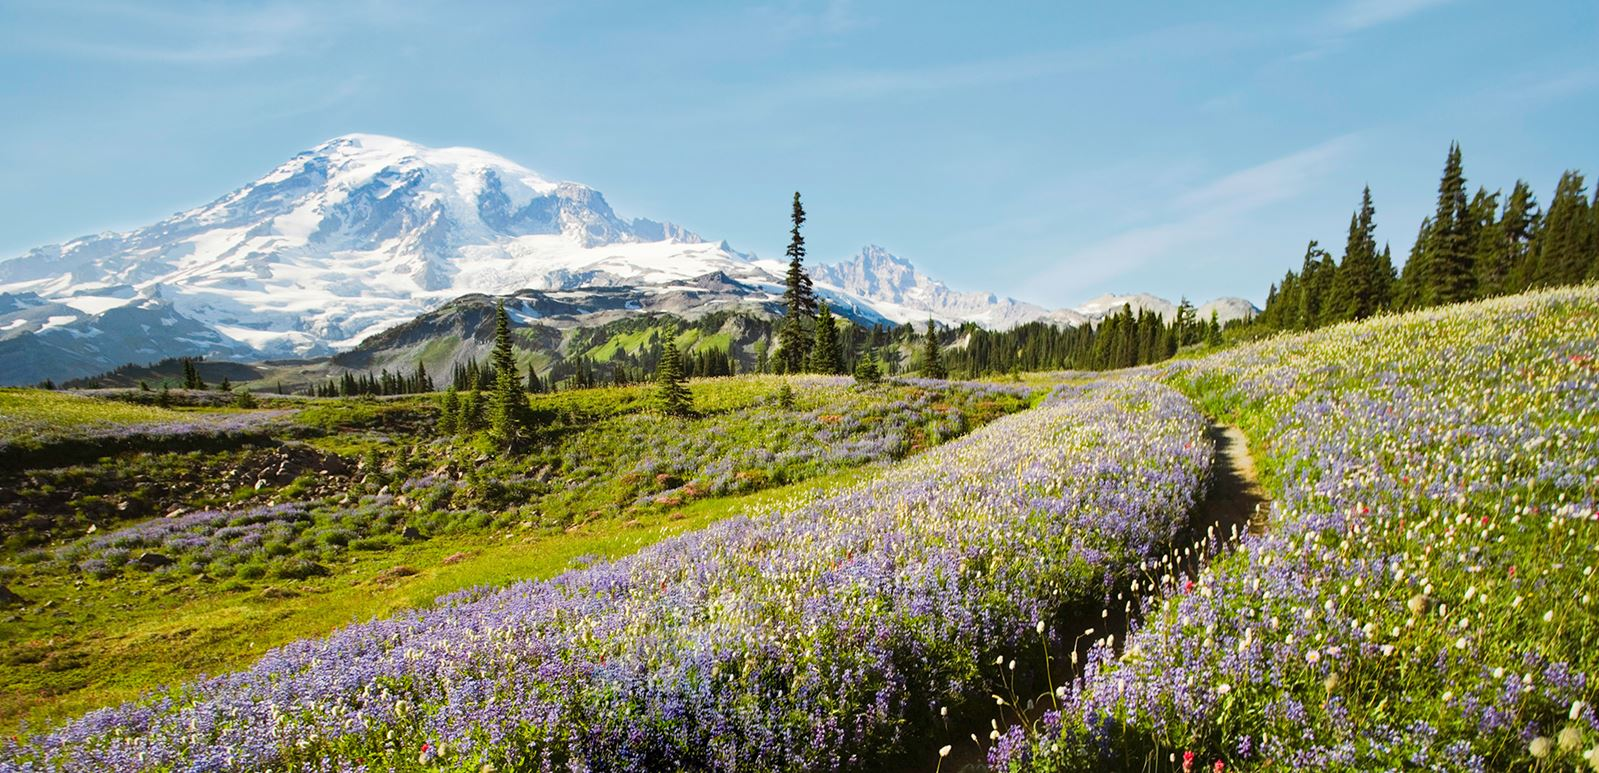 tehaleh-trail-at-Mount-Rainier-hero.jpg